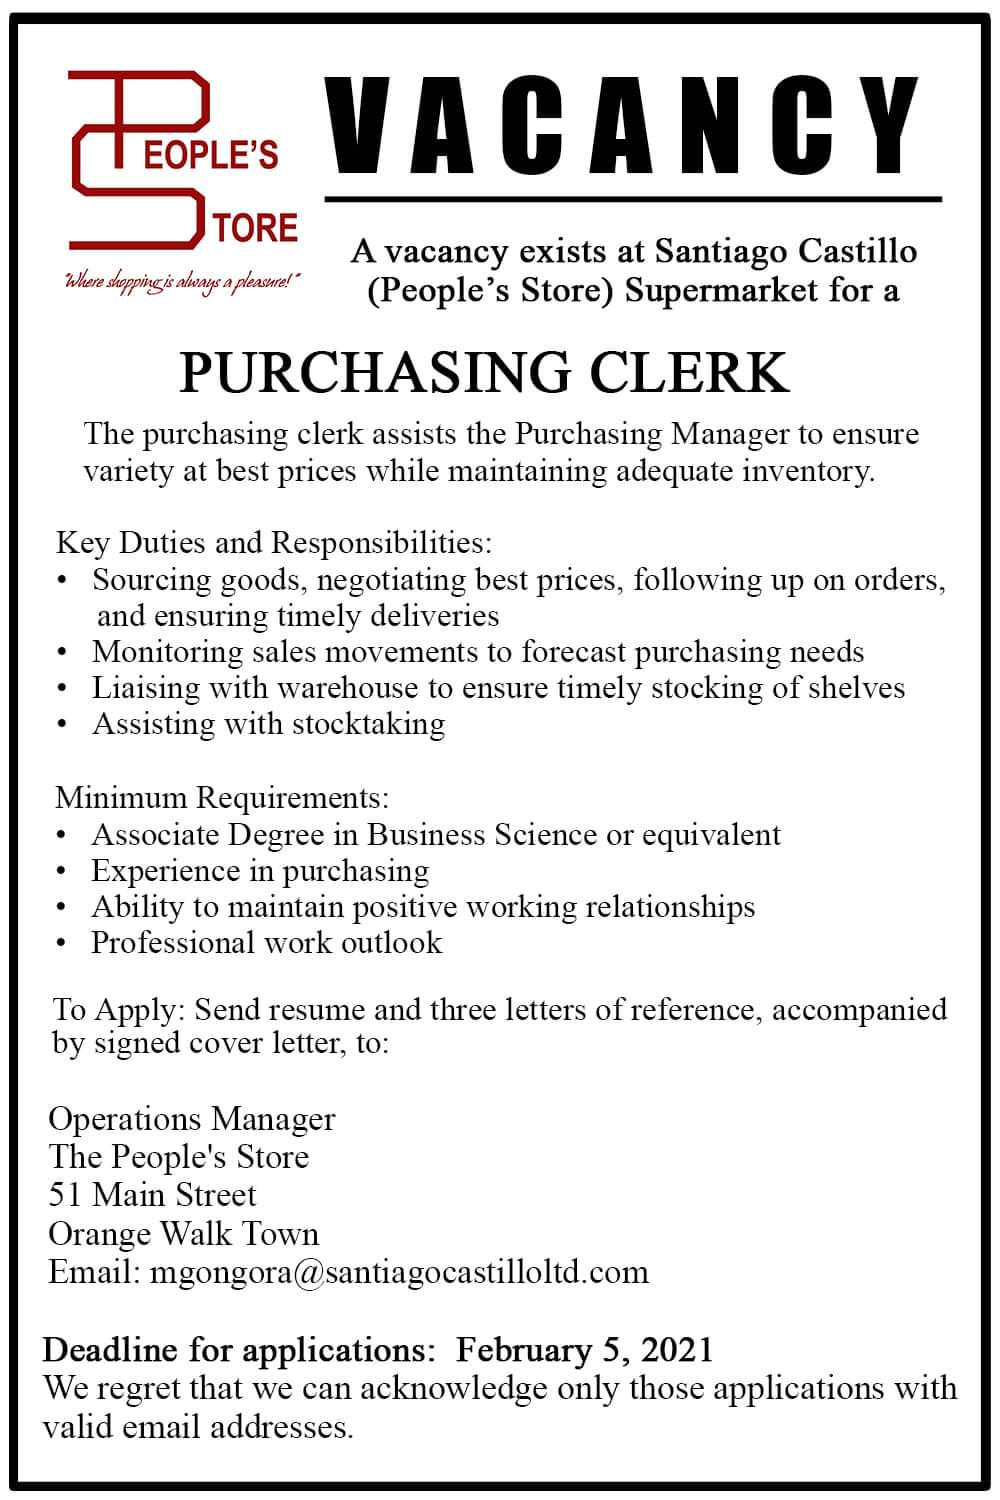 Job vacancy in Orange Walk: Purchasing Clerk at The People's Store